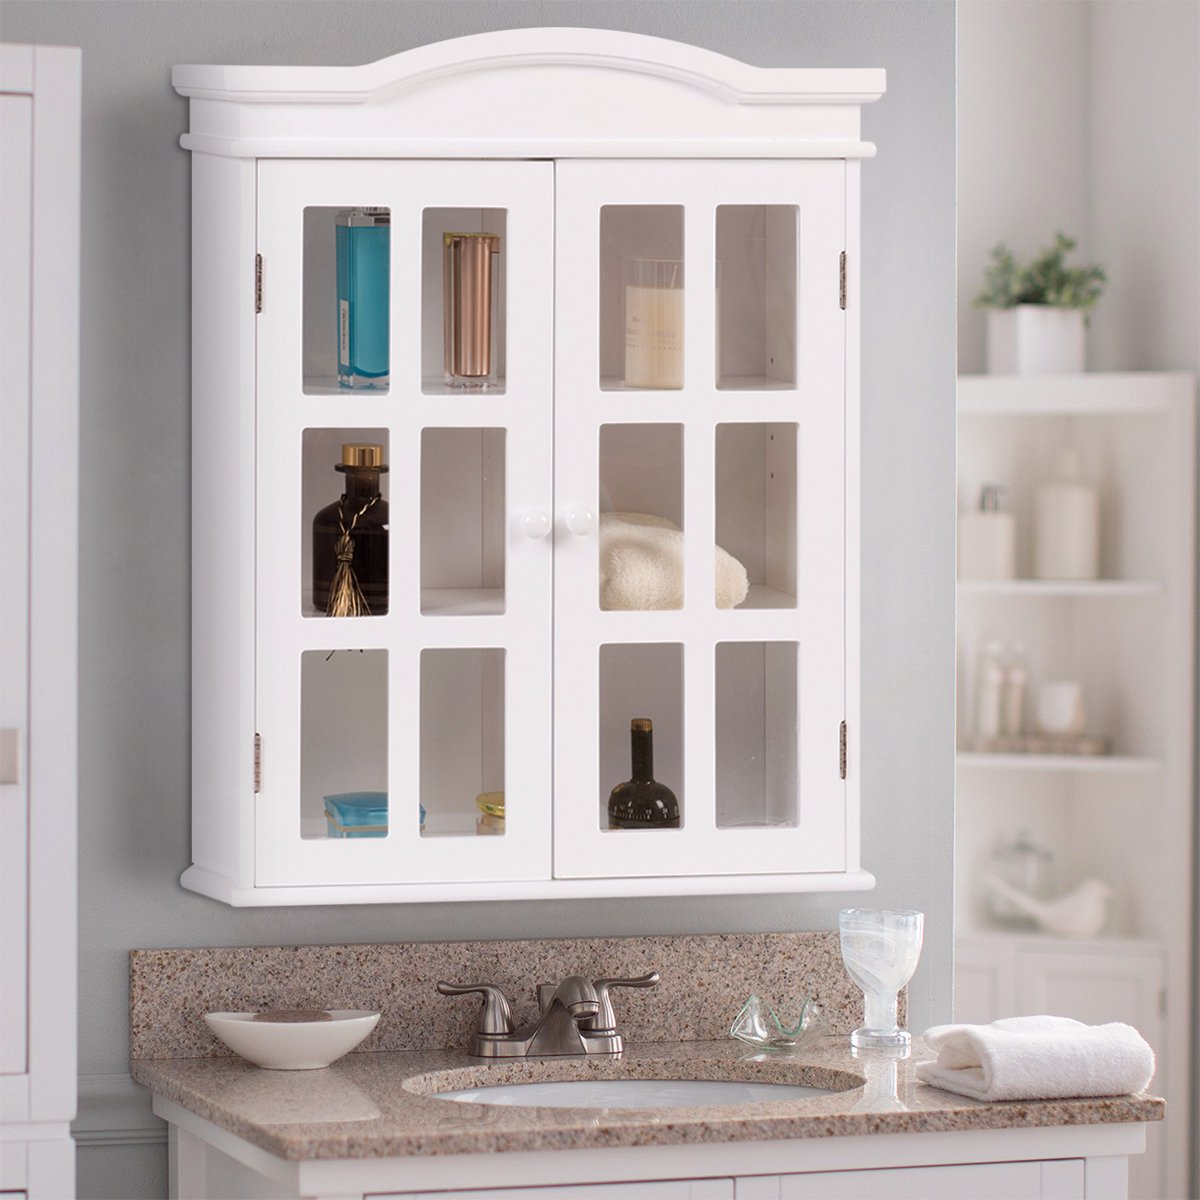 Tangkula Wall Mount Bathroom Cabinet Elegant Two Door Collection Storage Medicine Cabinet White (White)